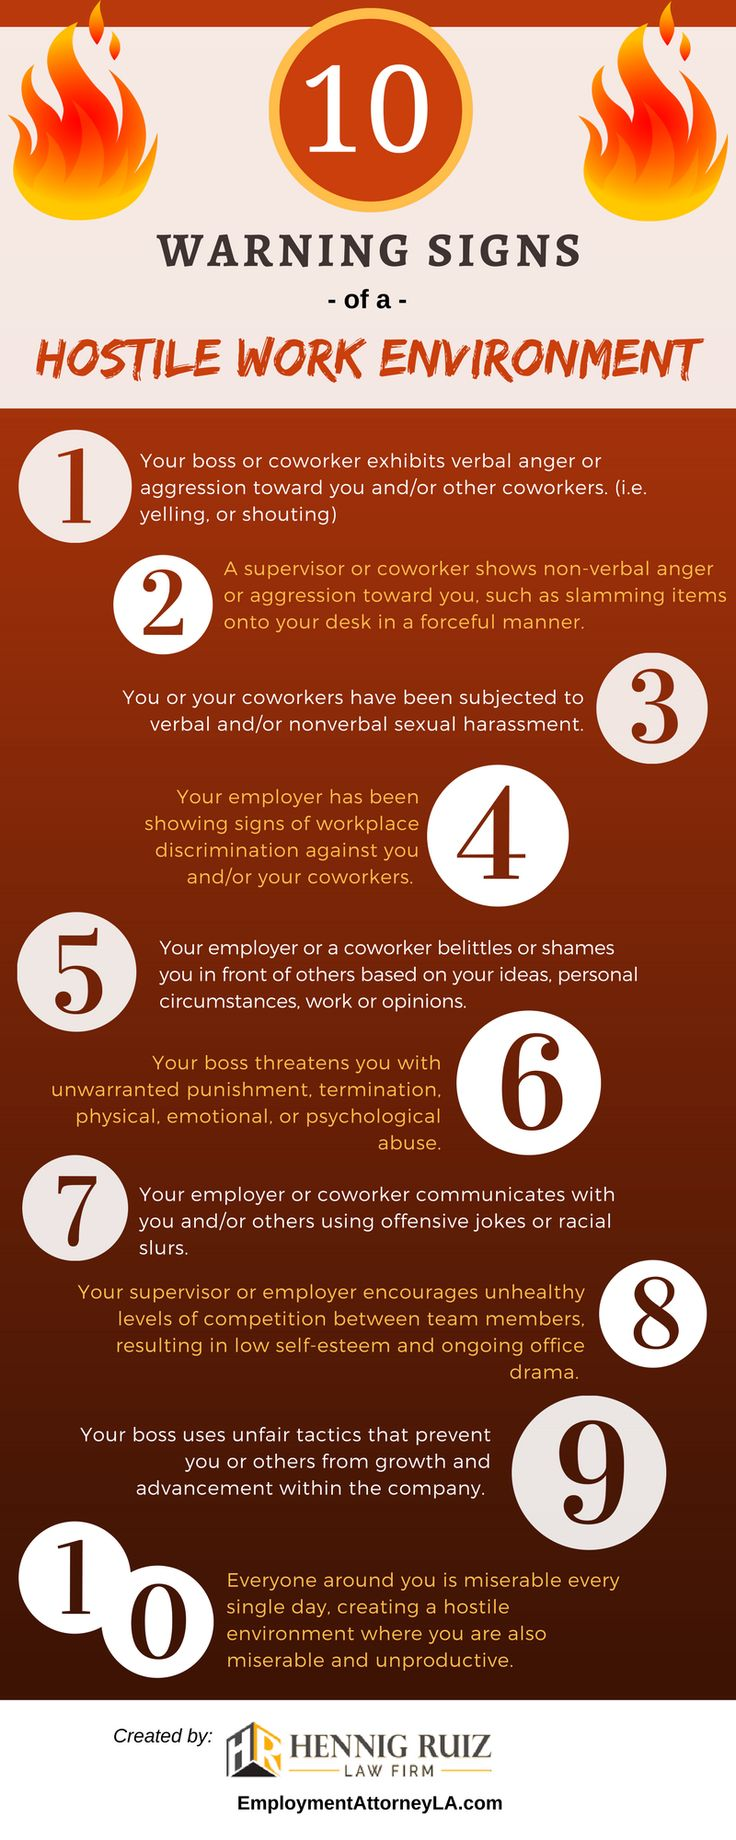 best ideas about hostile work environment signs hostile work environment infographic png 800times2000